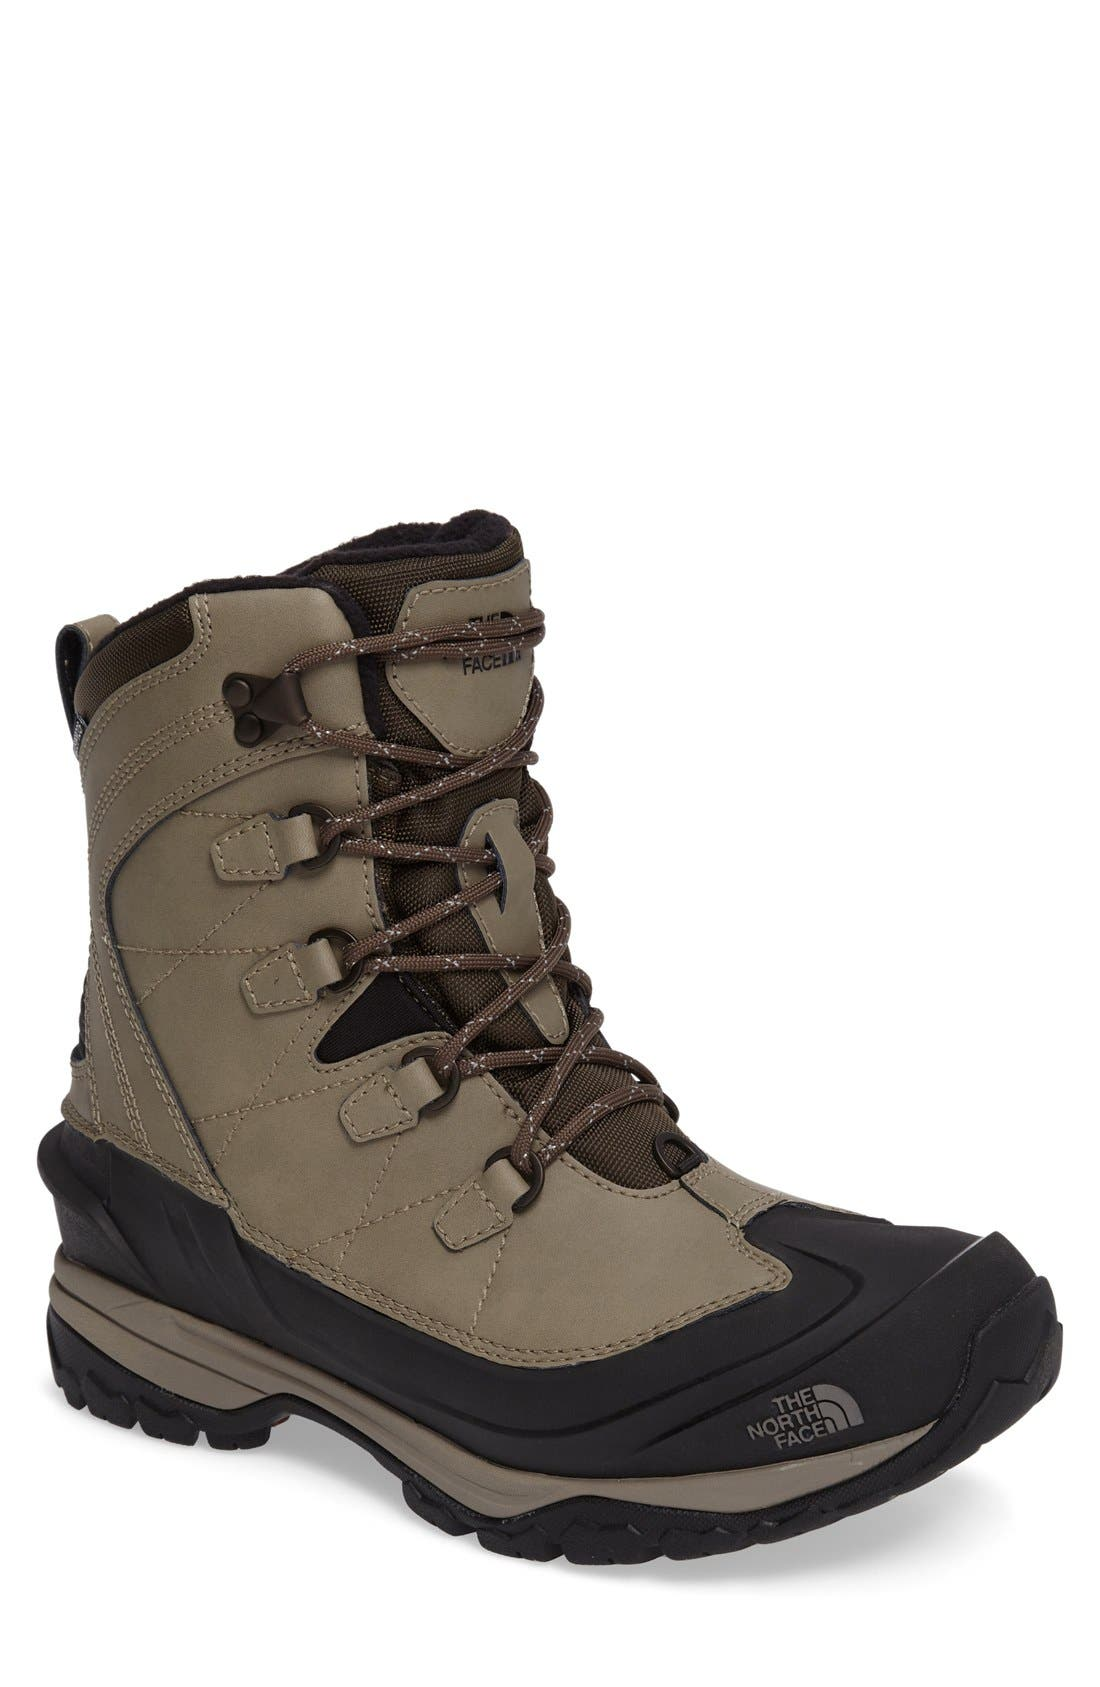 Main Image - The North Face Chilkat Evo Waterproof Insulated Snow Boot (Men)